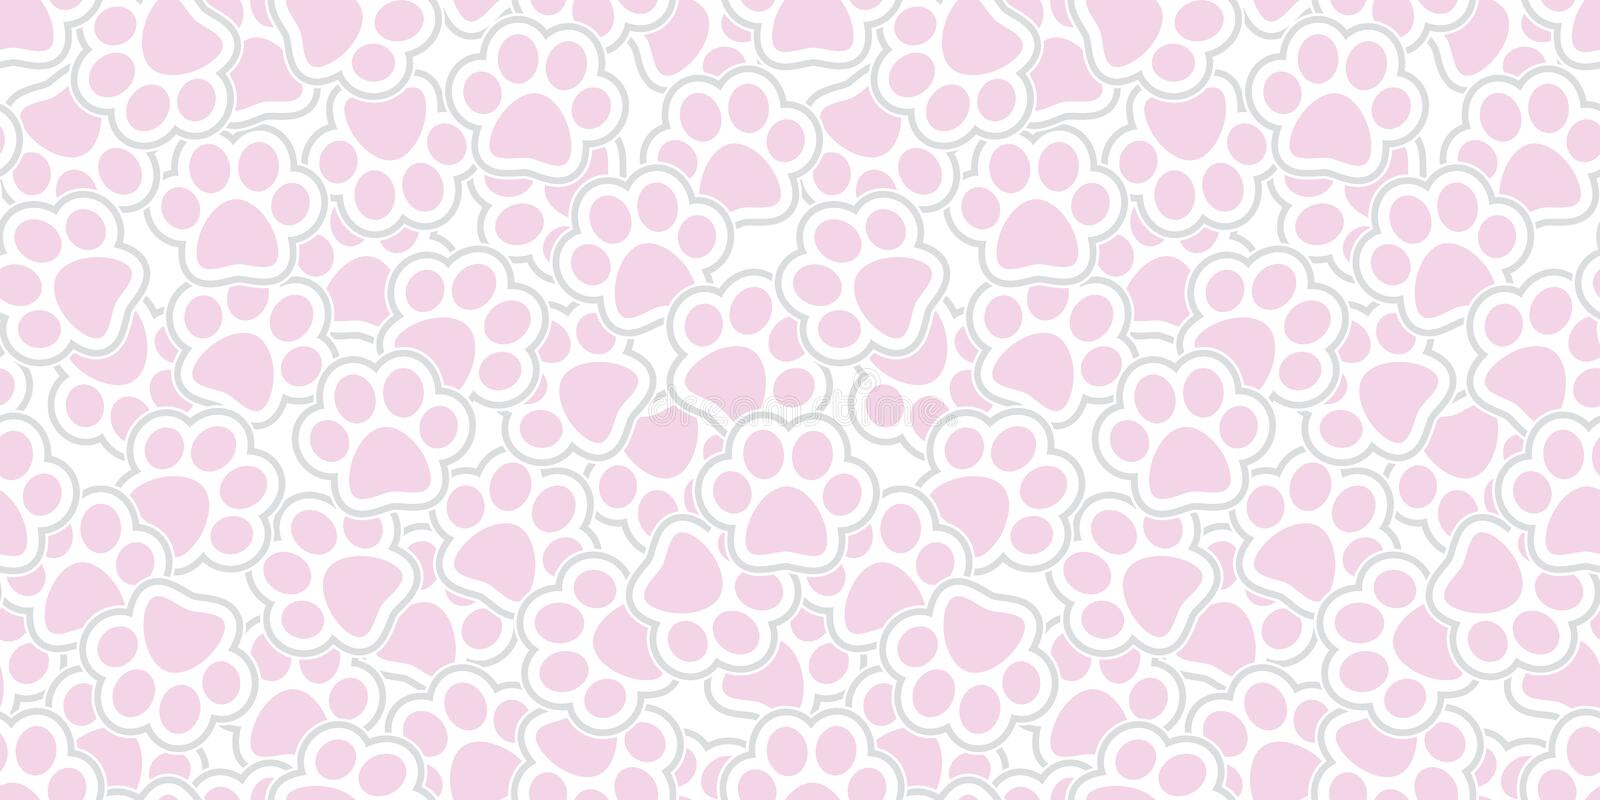 Dog Paw Seamless Pattern vector Cat paw foot print isolated wallpaper repeat background pink. Dog Paw Seamless Pattern vector Cat paw foot print isolated repeat vector illustration